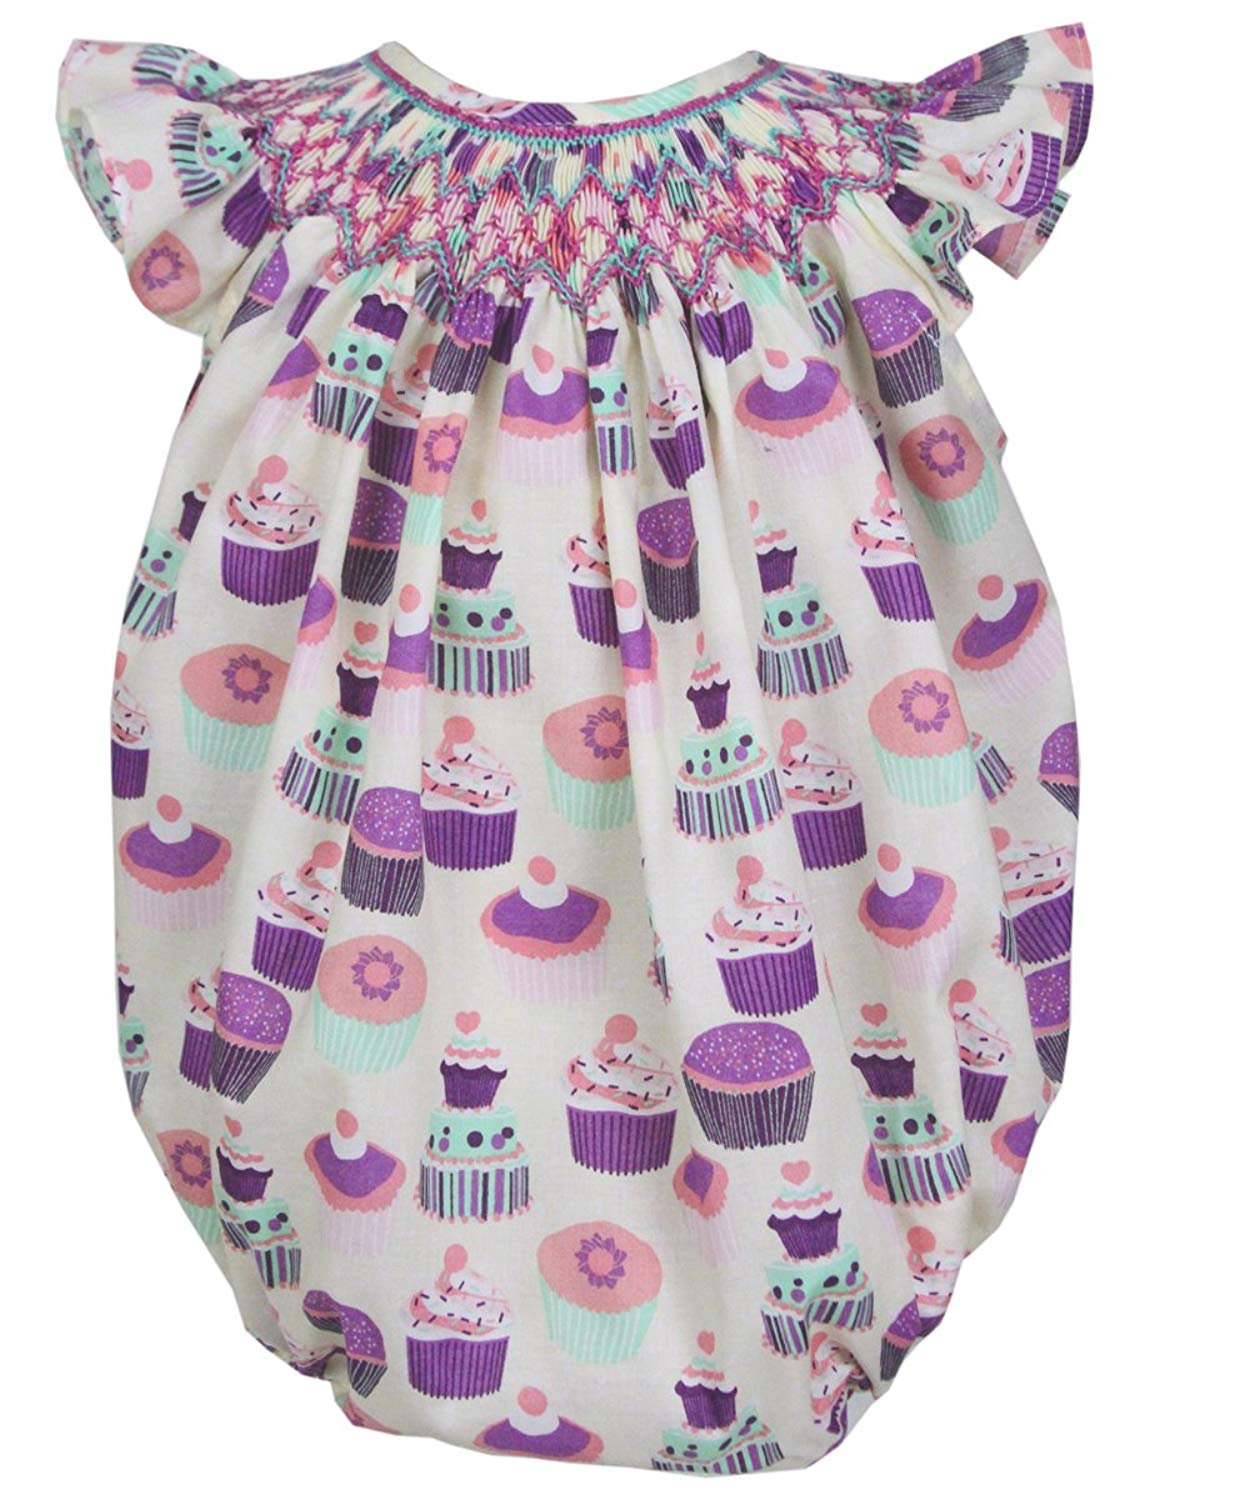 7d36c4212f5c Get Quotations · Carouselwear Baby Girls First Birthday Party Bubble Romper  Smocked Cupcakes